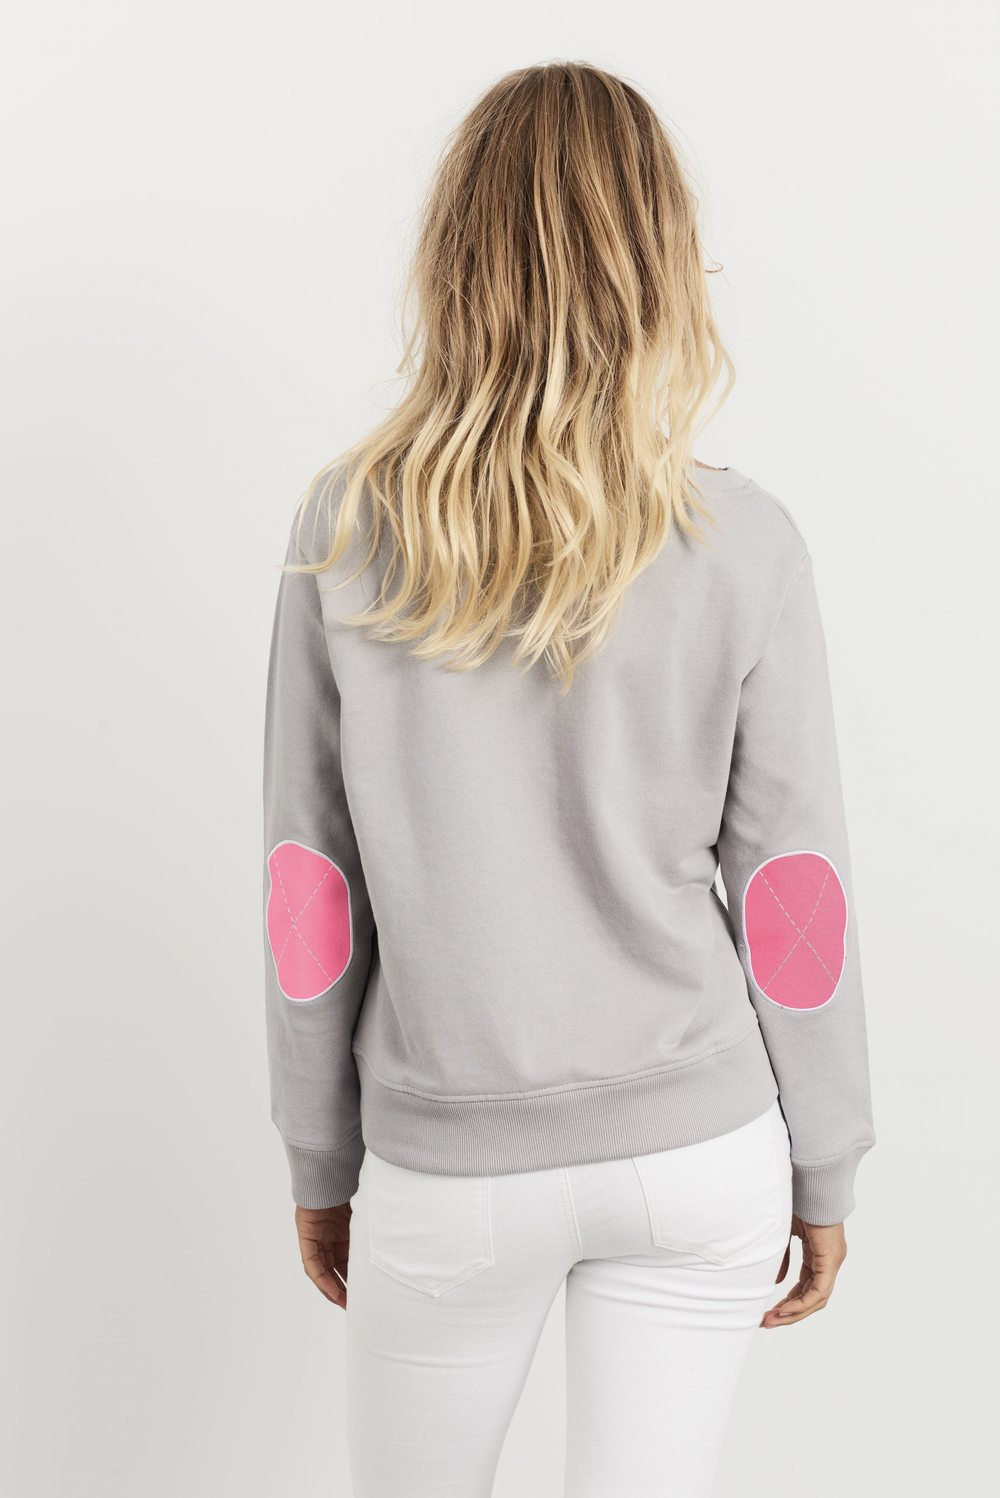 CLASSIC COTTON WINDY - FRENCH GREY & HOT PINK PATCHES - EST 1971